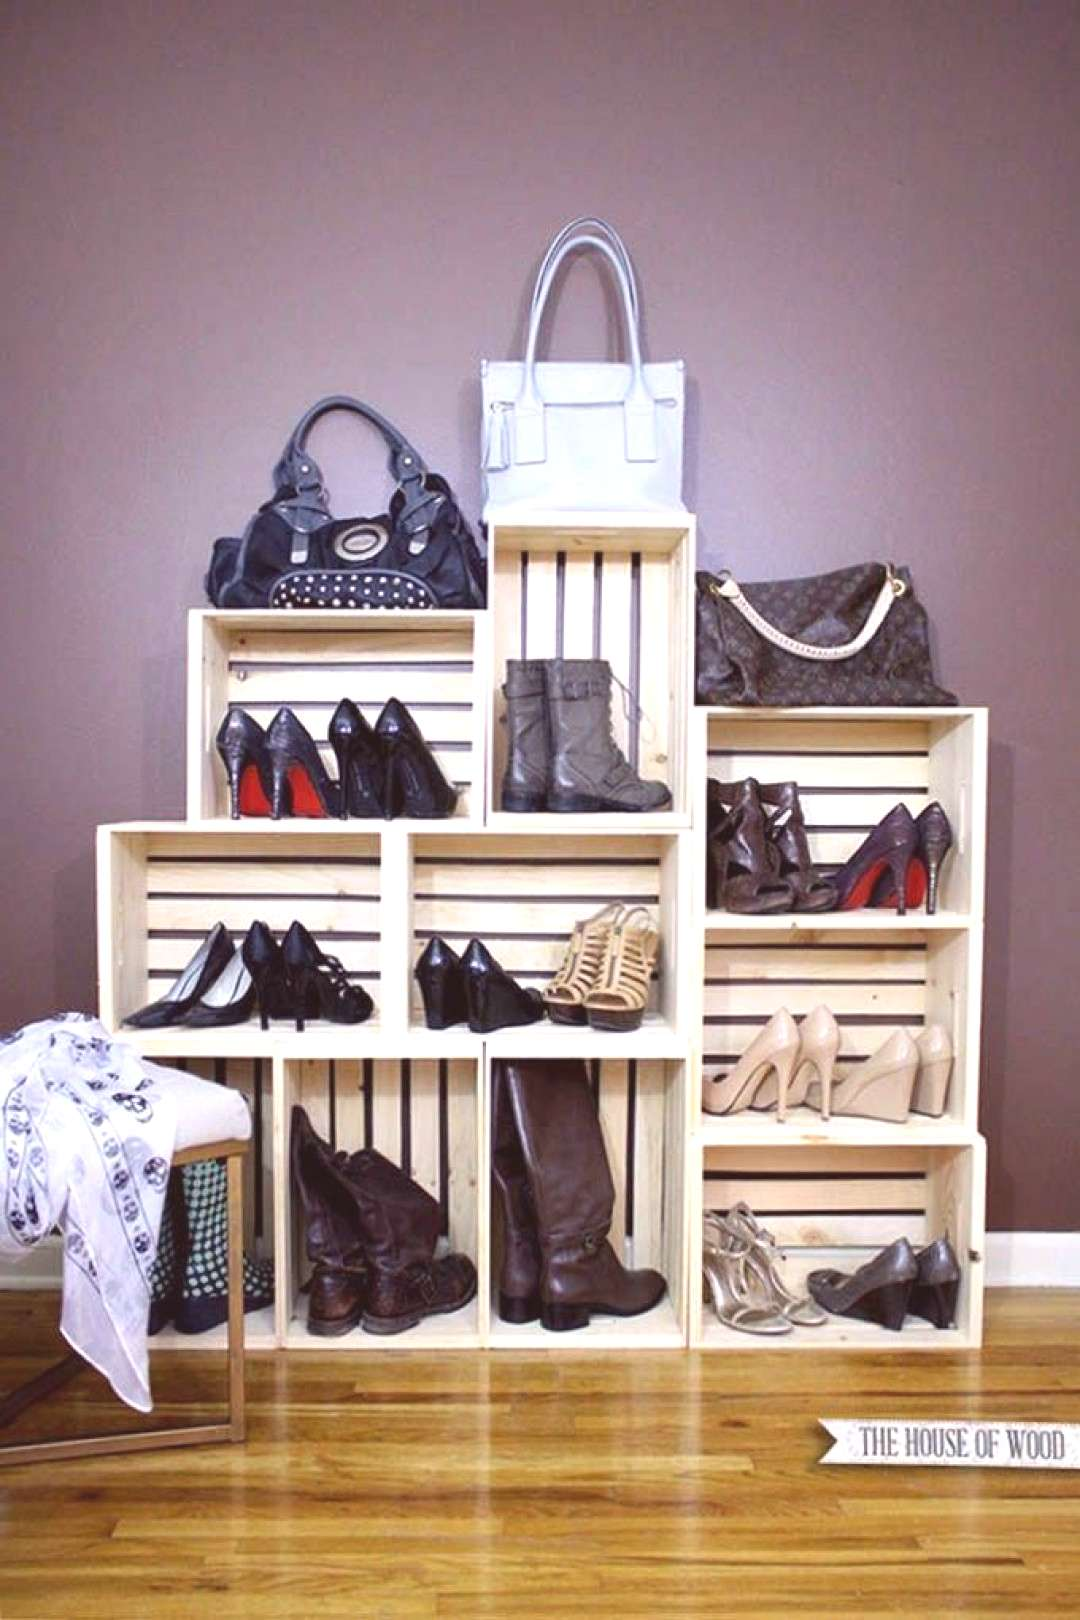 39 Simple Shoe Storage Ideas That Will Declutter Your Hallway   Posh Pennies